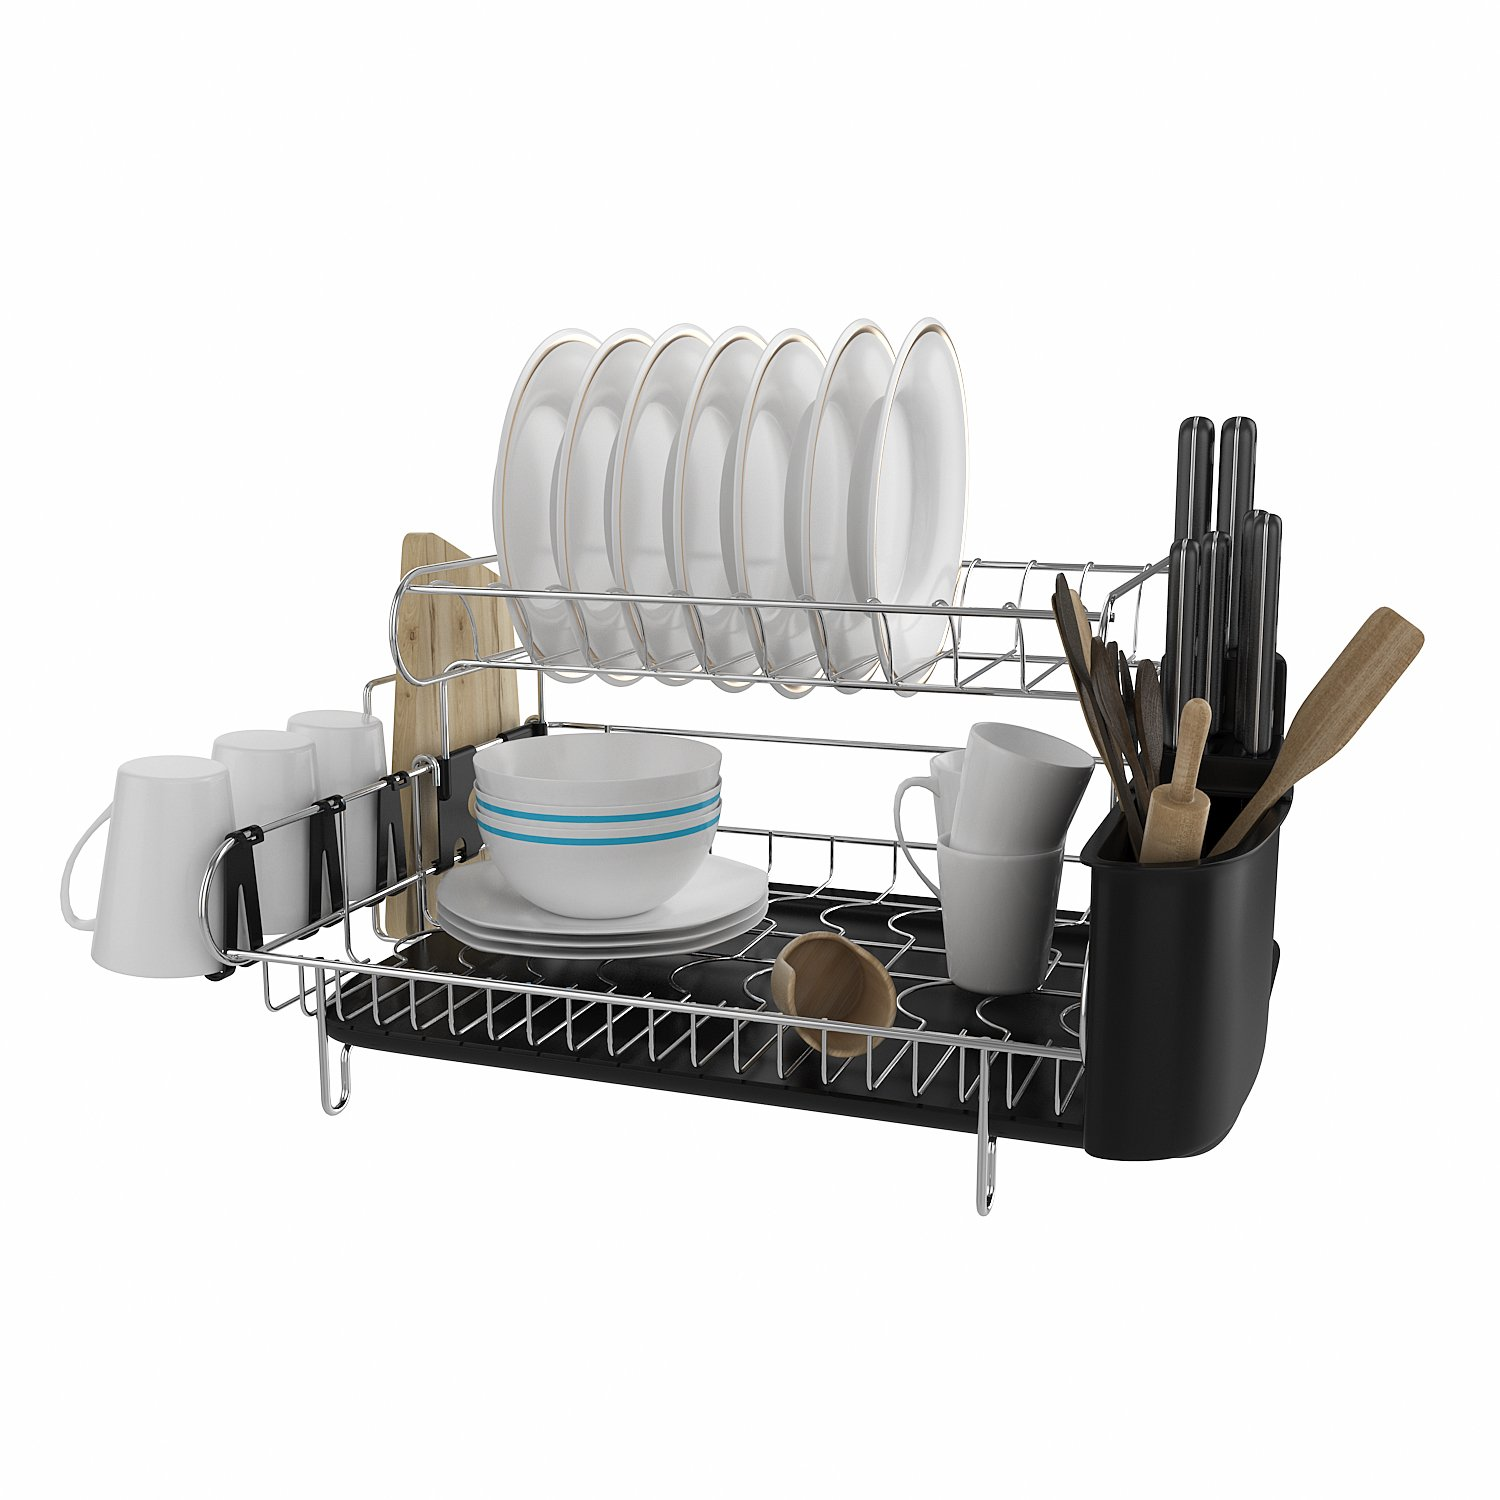 Flagup Professional Dish Rack, 304 Stainless Steel, 2 Tier Deluxe Chrome Kitchen Dish Drainer Drying Rack with Microfiber Mat & Drainboard & Cutlery Holder, Large Capacity